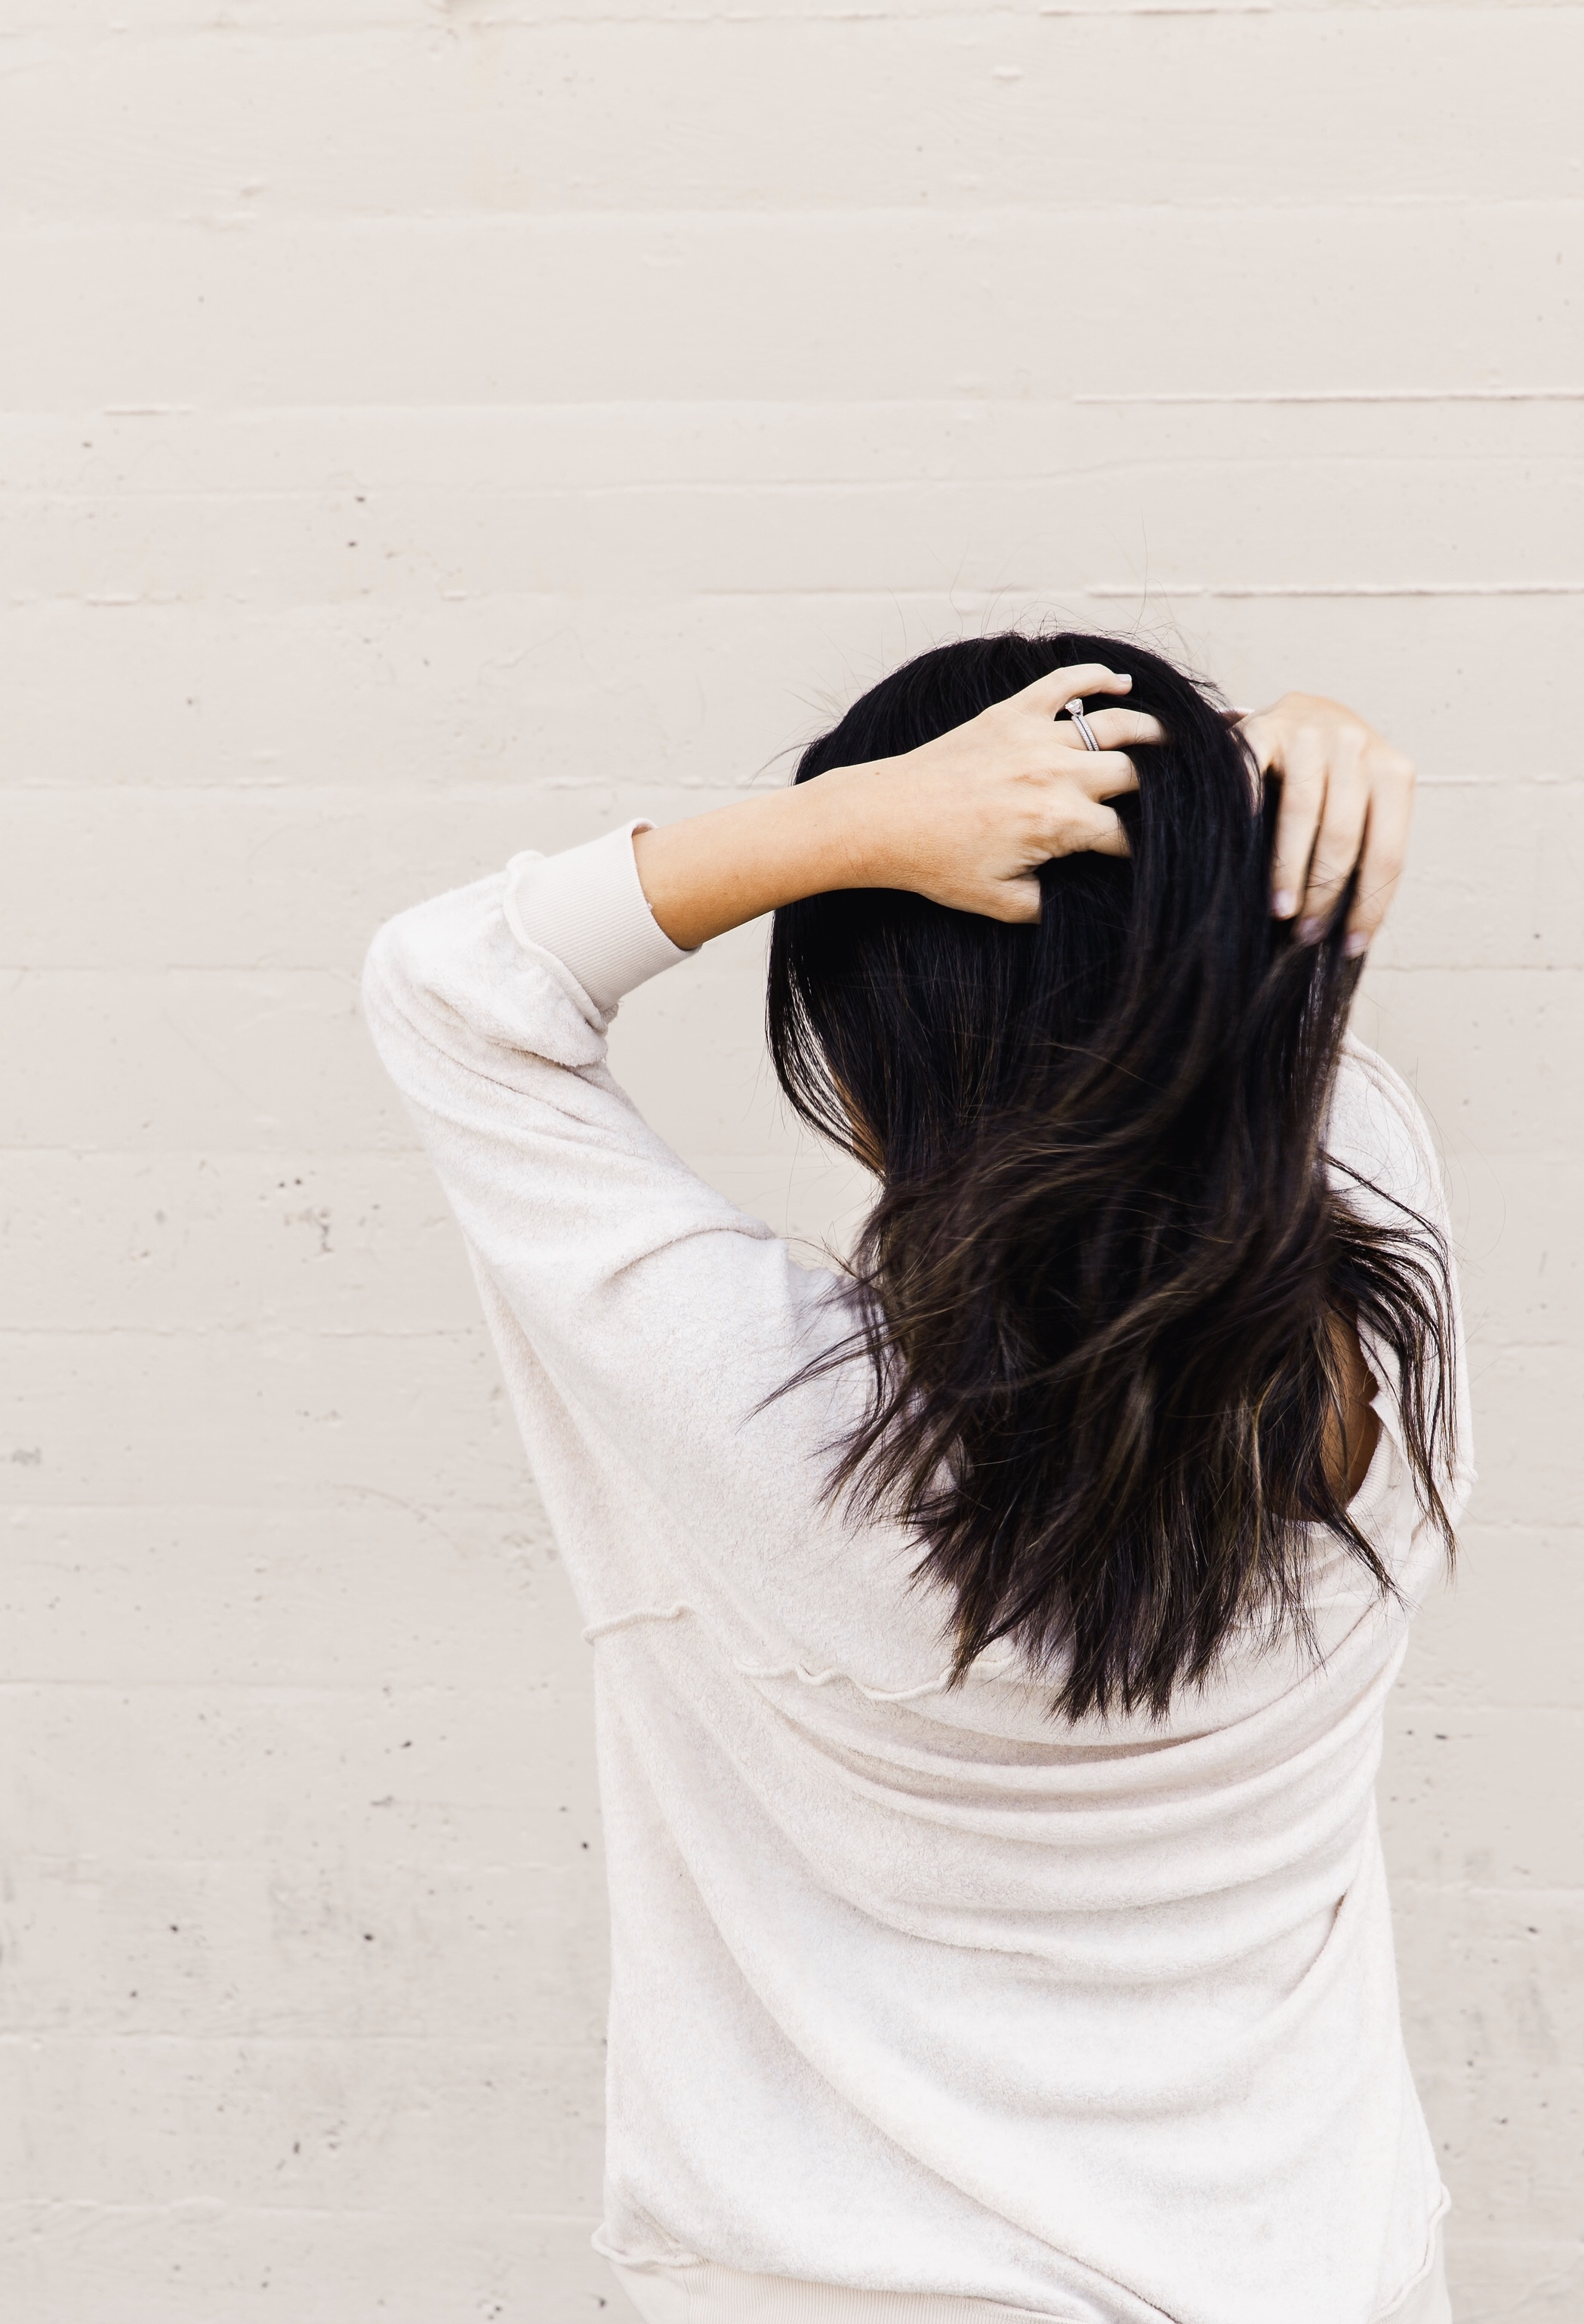 Picture of El Abad facing a neutral toned wall wearing a white sweater and running her hands through her dark hair.